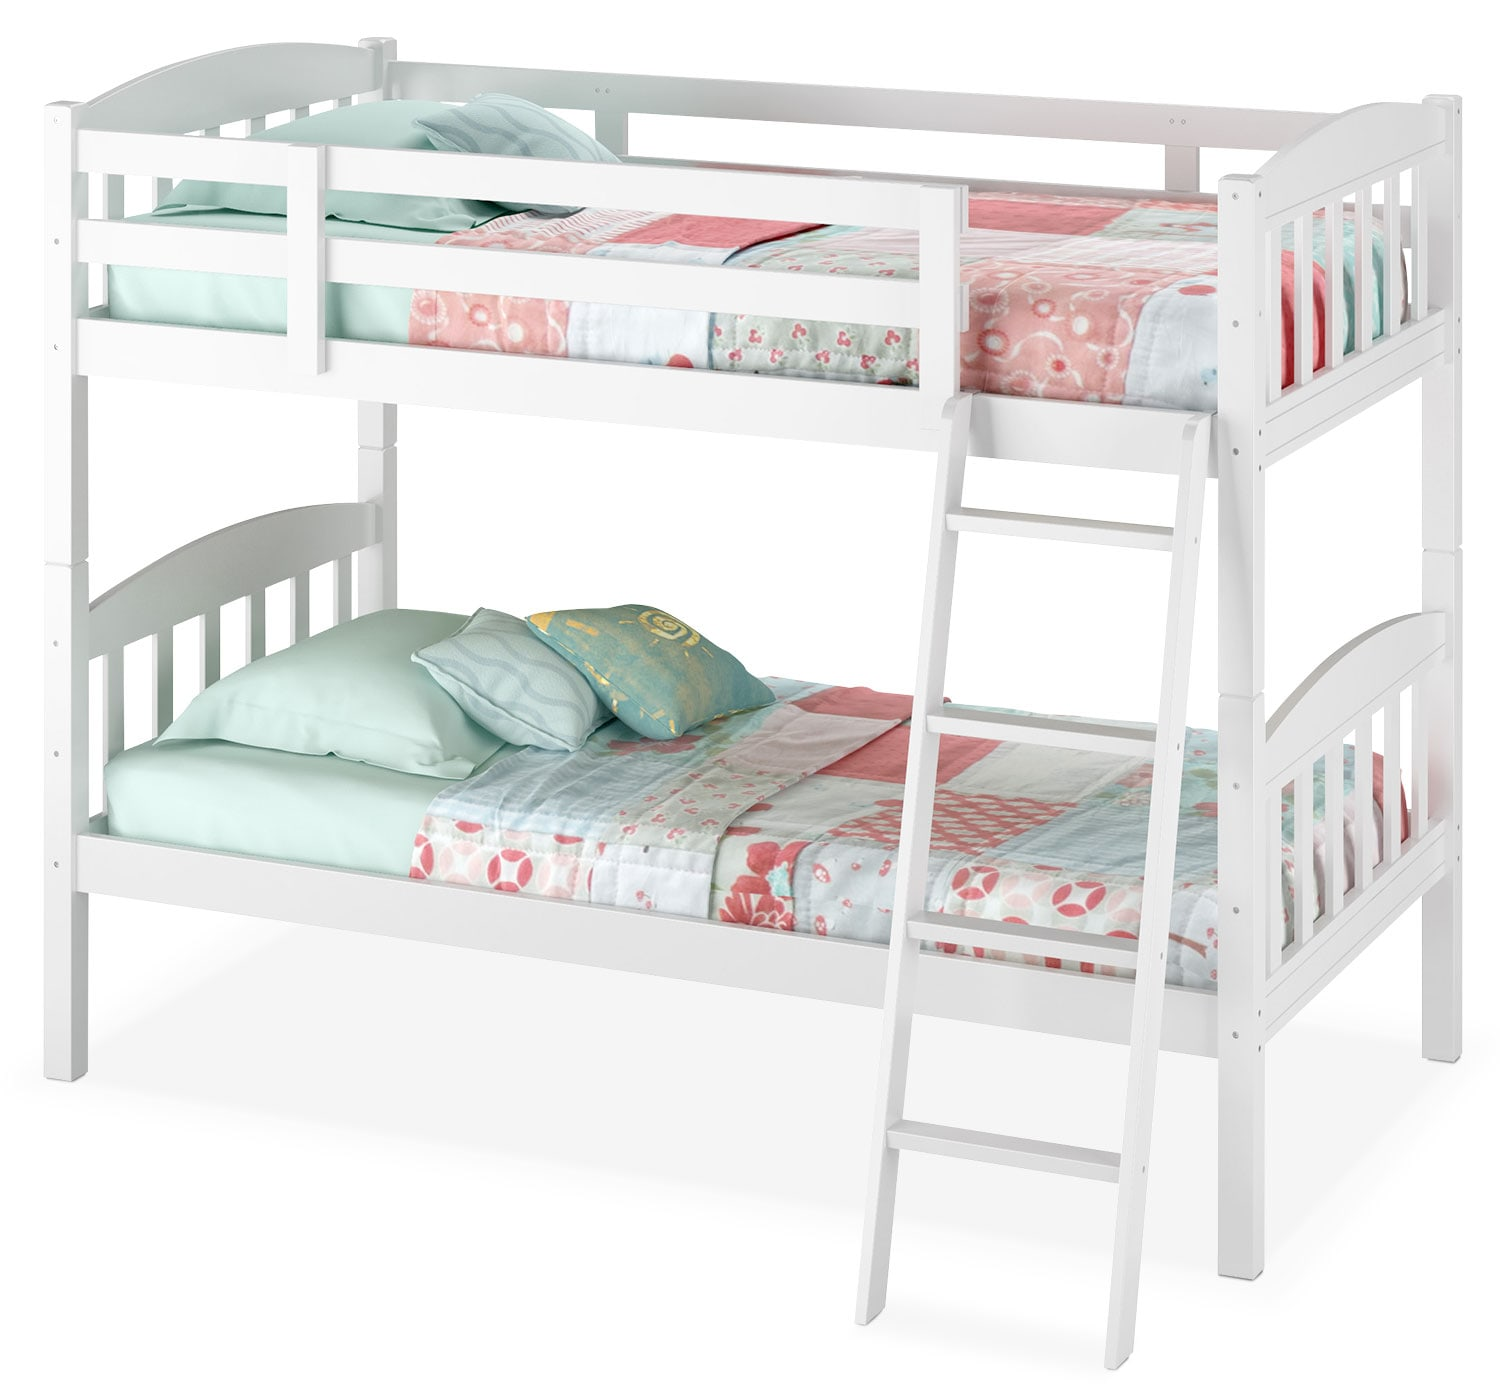 CorLiving Twin Bunk Bed with Slat Headboards – White